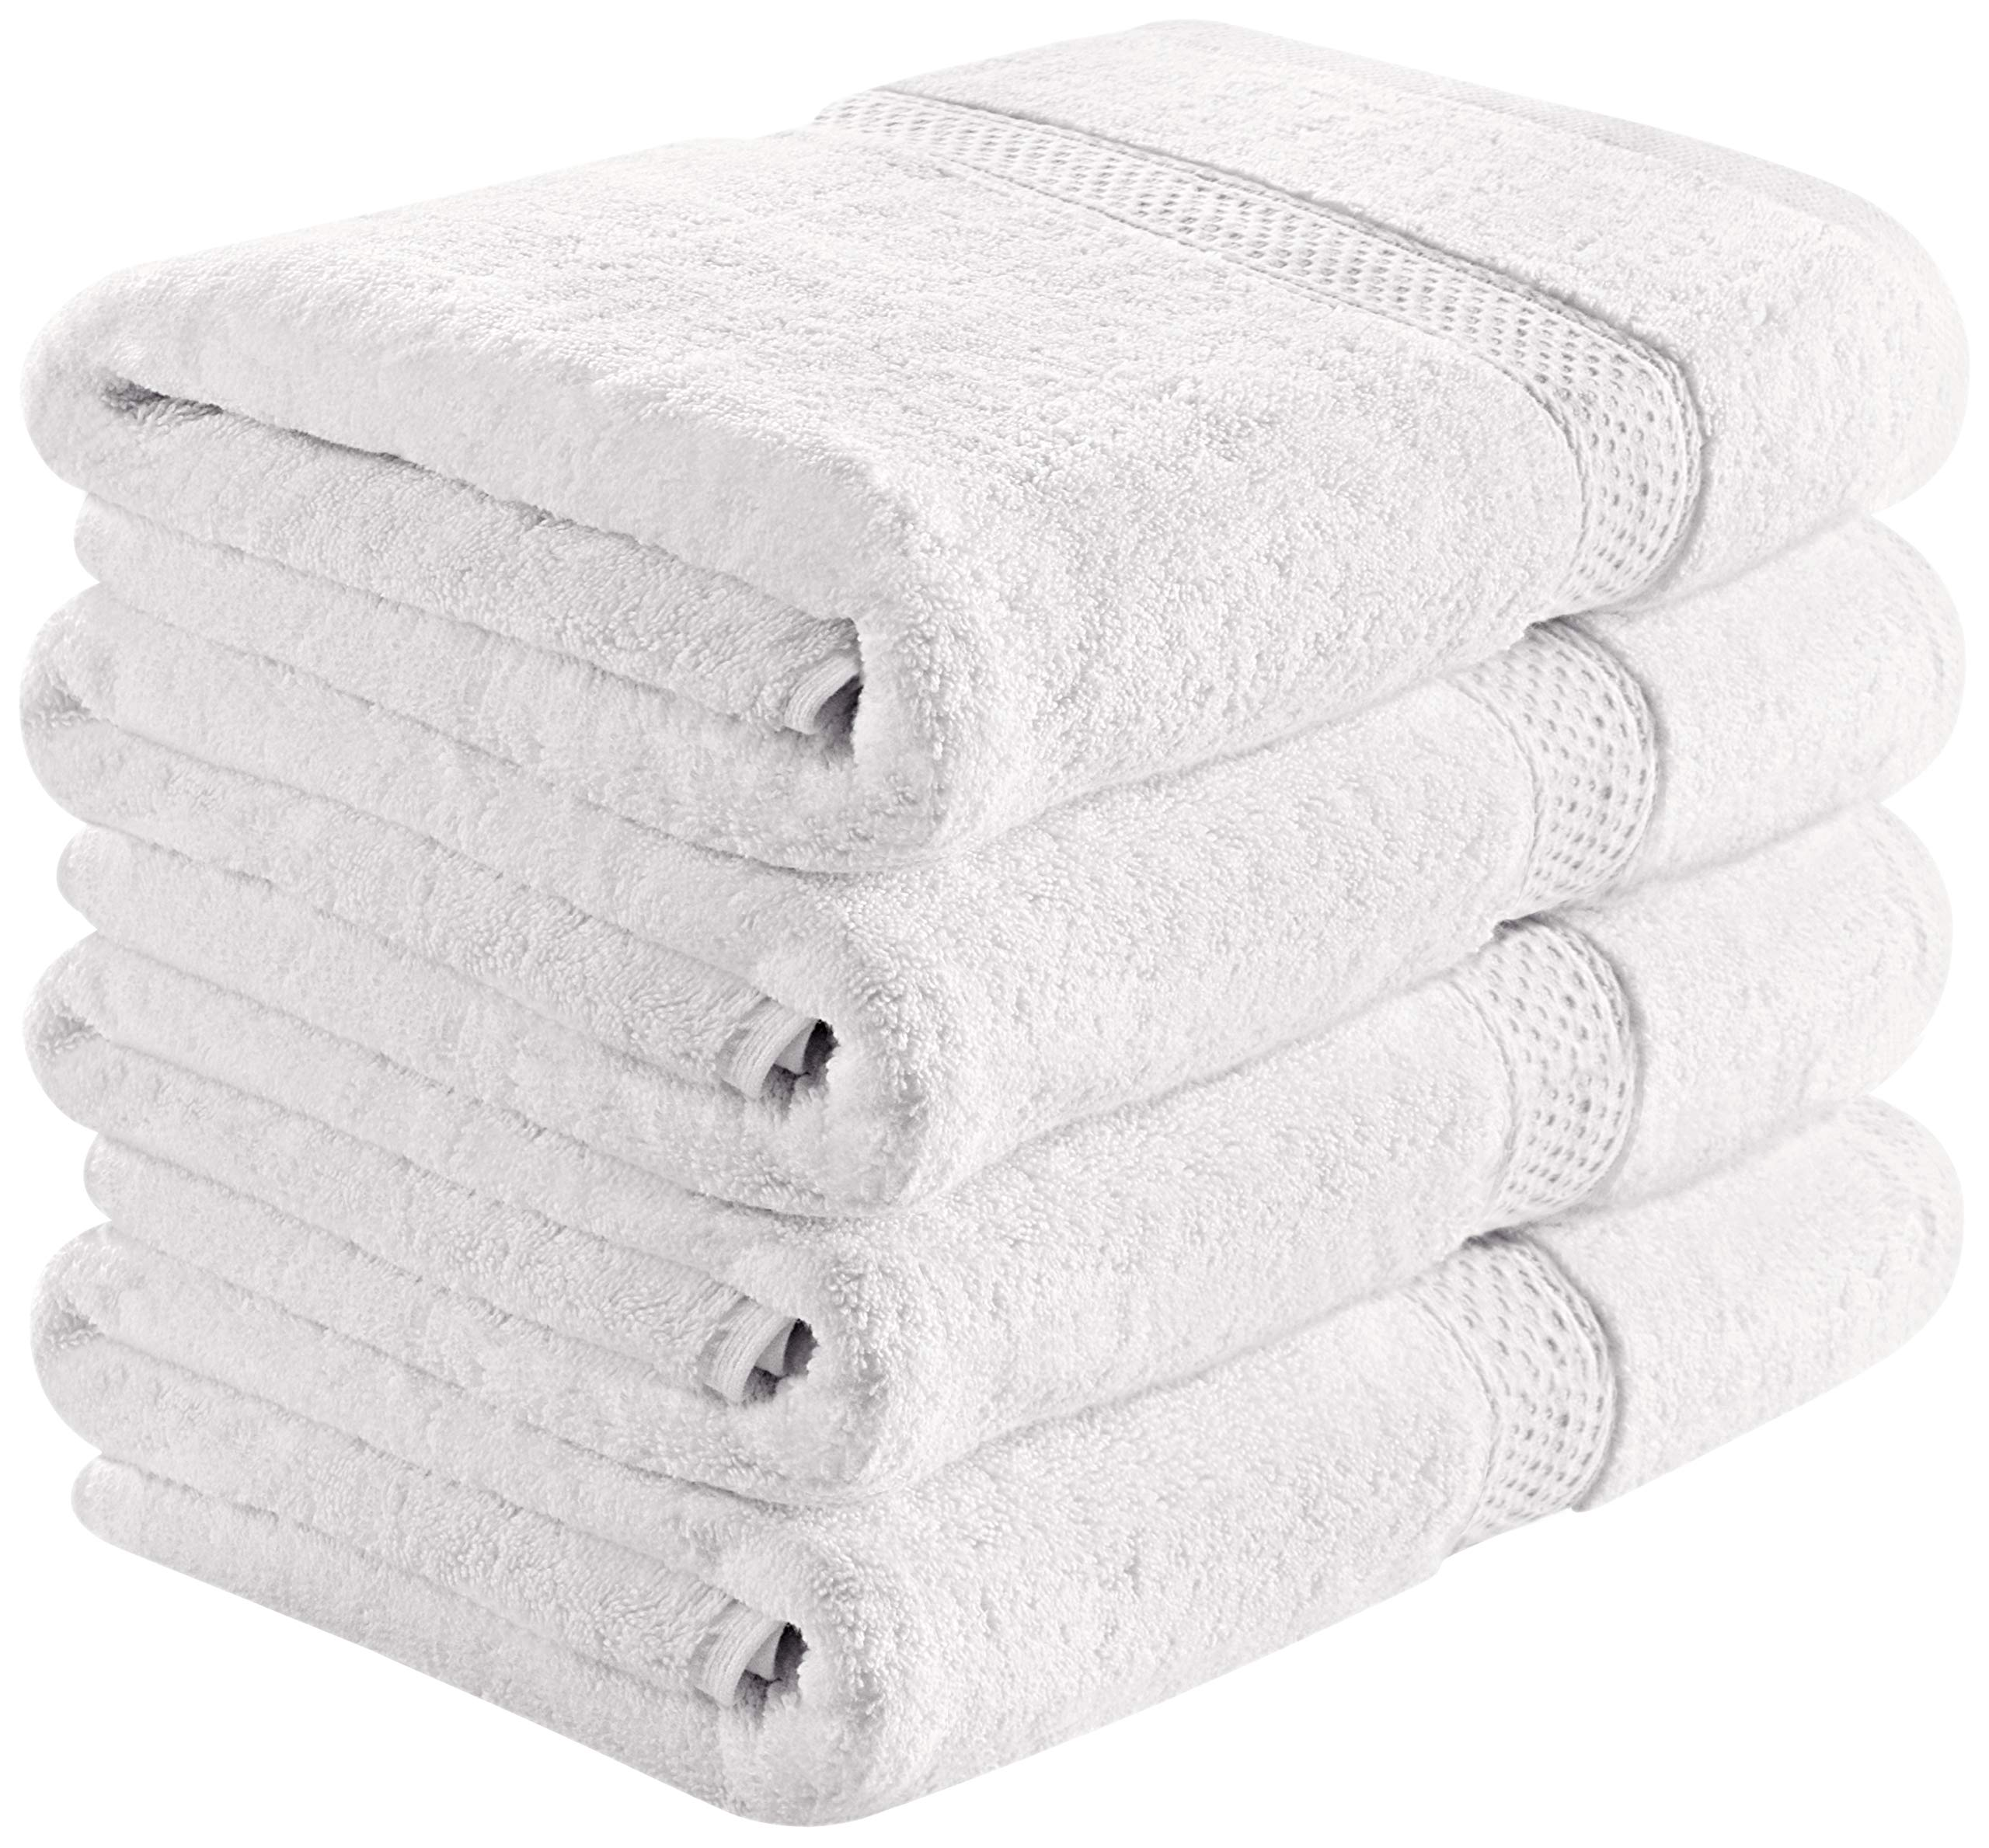 Utopia Towels 700 GSM Premium White Bath Towels Set - Pack of 4 - (27 x 54 Inches) - 100% Ring-Spun Cotton Towels for Home, Hotel and Spa – White Towels Set with Maximum Softness and High Absorbency